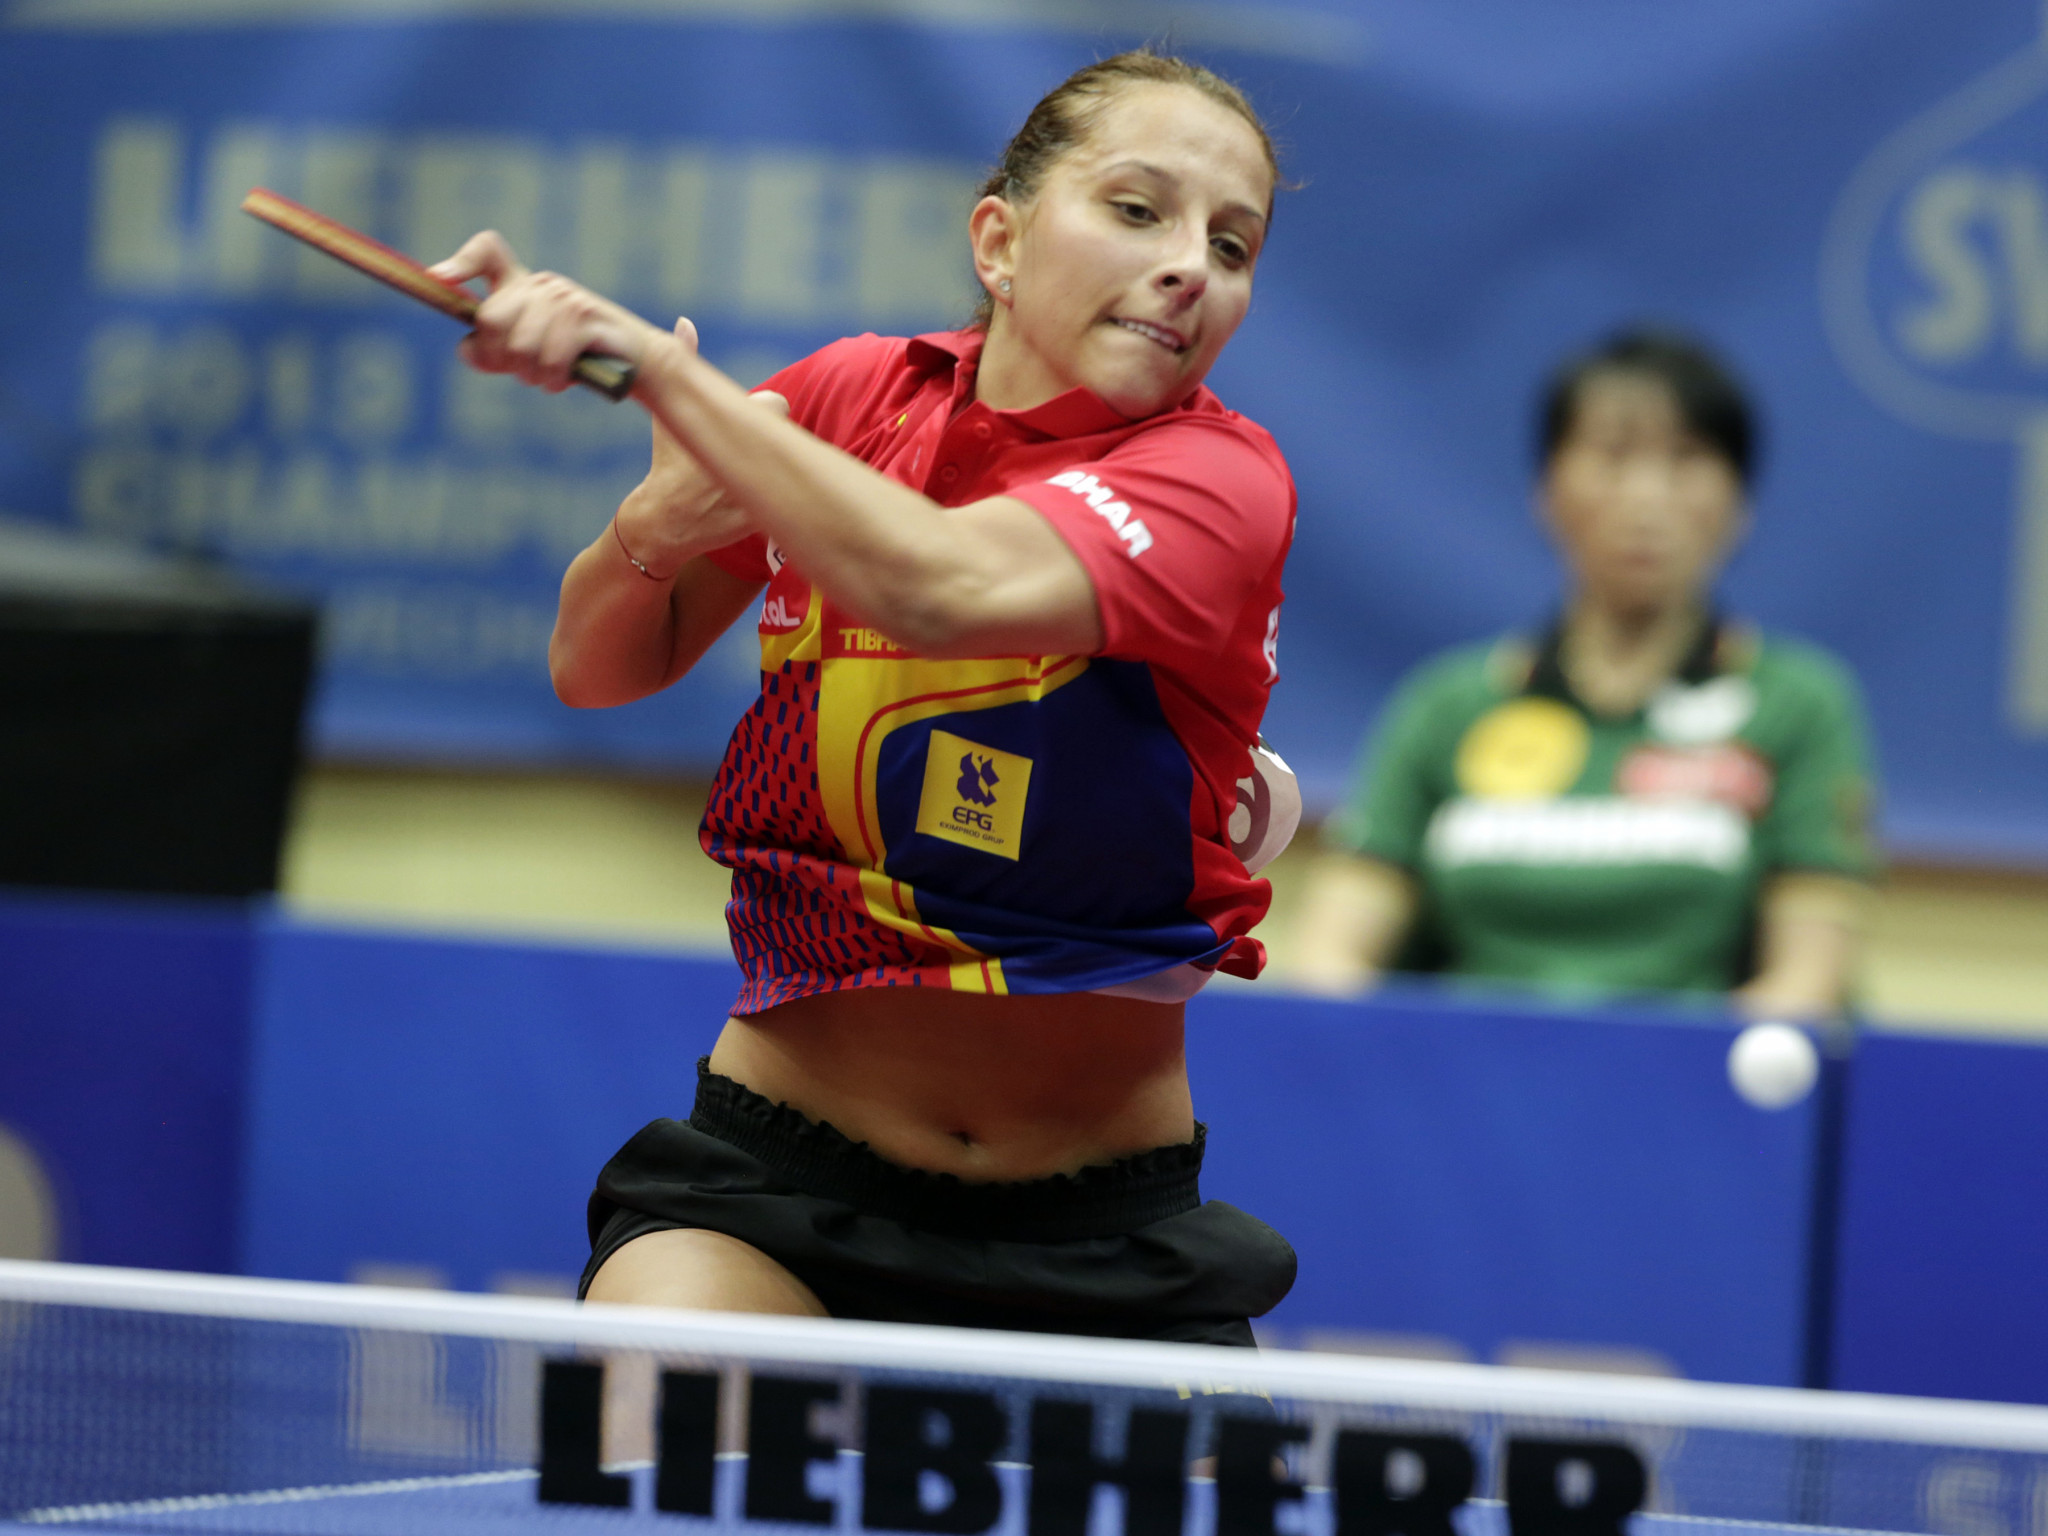 Elizabeta Samara of Romania, the world number 34, caused an upset at the WTT Star Contender today as she knocked out third seed Kasumi Ishikawa ©Getty Images